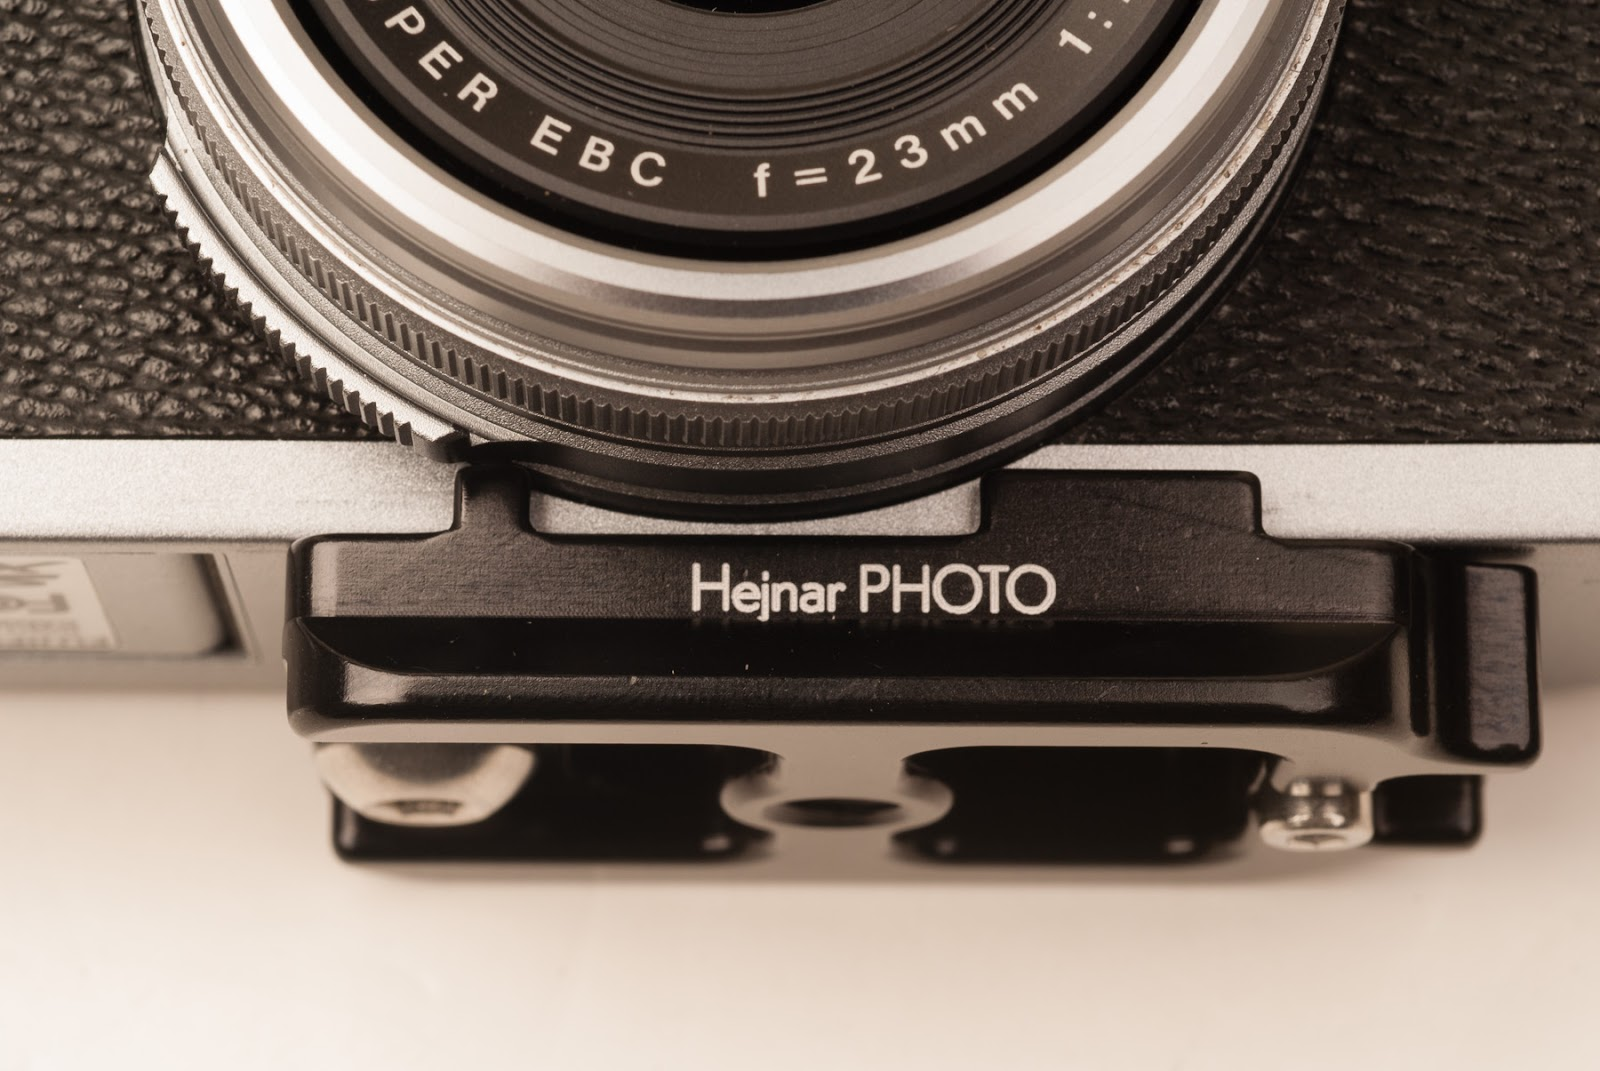 Hejnar PHOTO D027 QR plate fitting below Fuji X100 lens